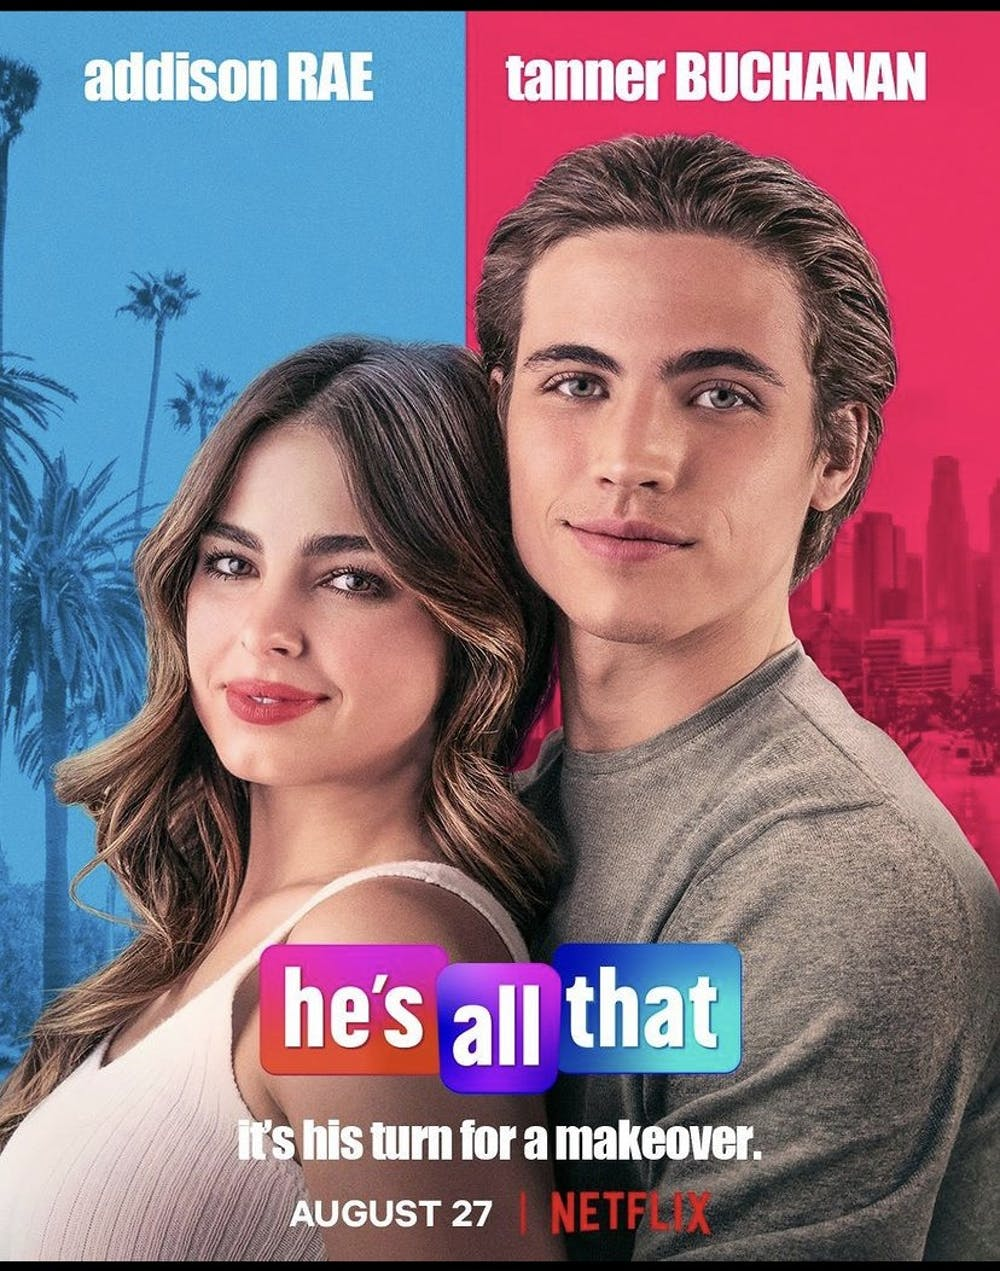 <p>TikTok superstar Addison Rae makes her acting debut in the remake of the &#x27;90s classic &quot;She&#x27;s All That,&quot; but what if it&#x27;s....all bad instead?</p>